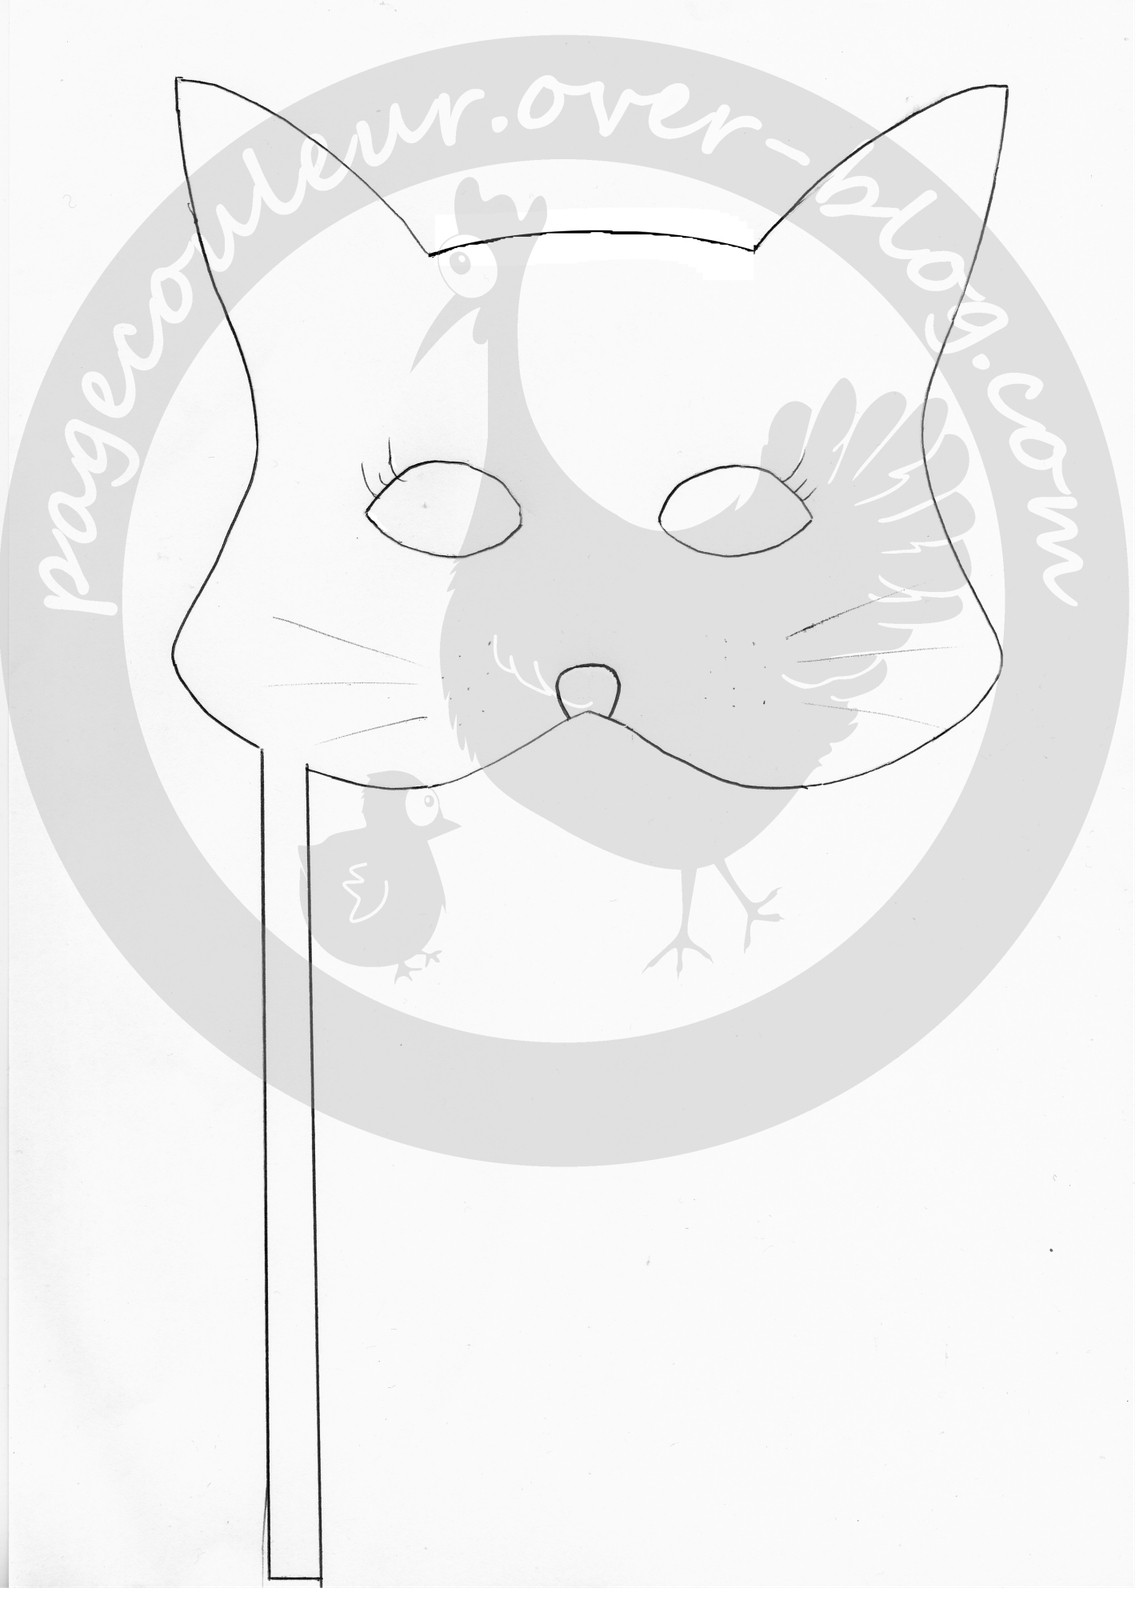 patron-masque-enfant-chat